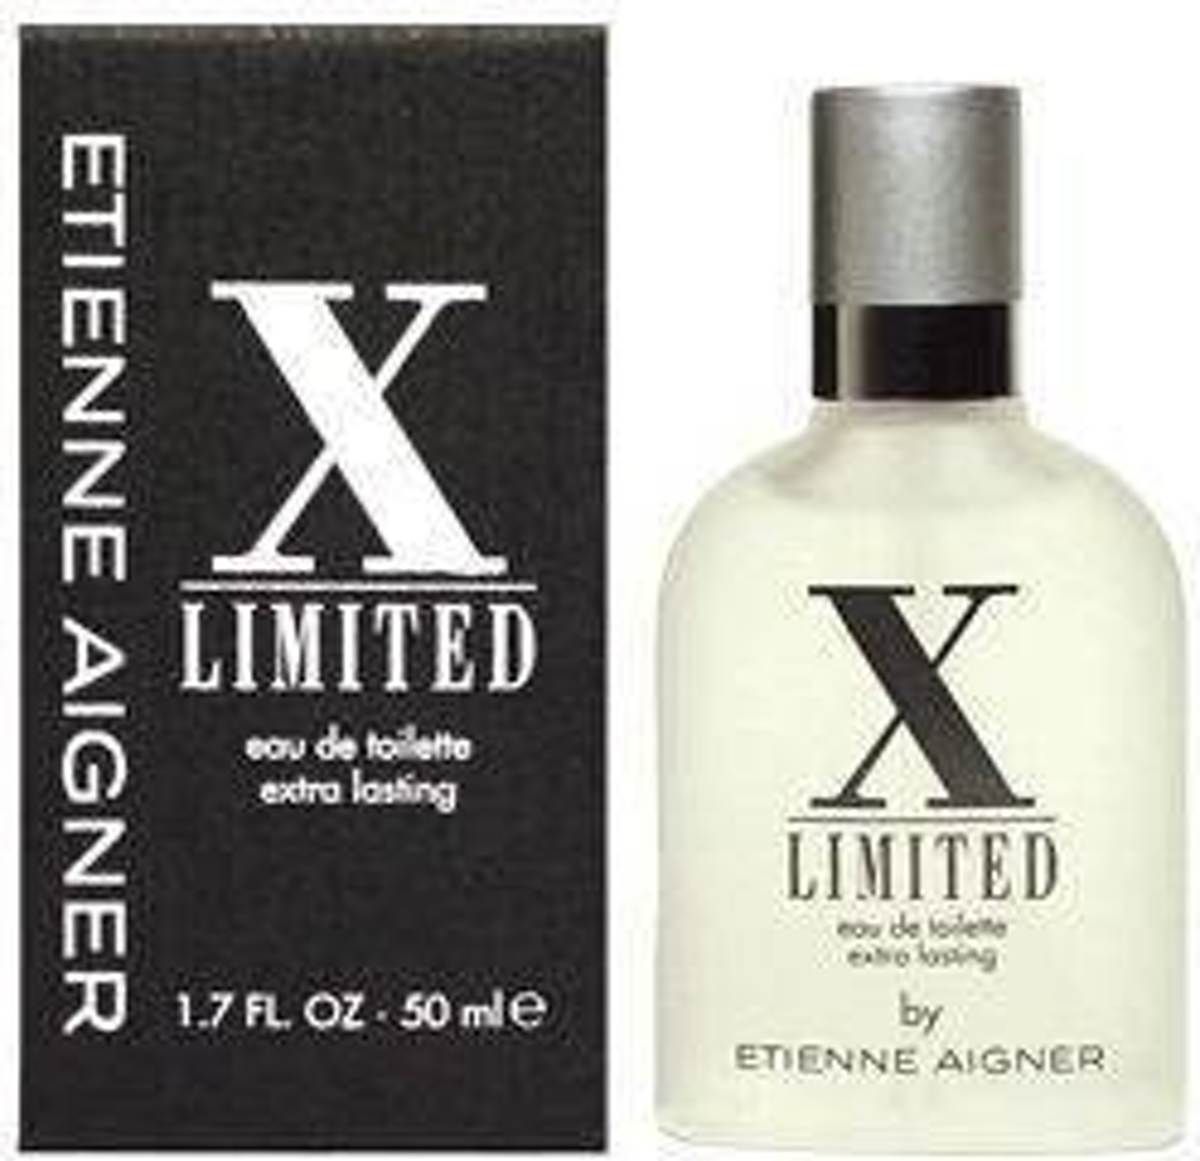 Aigner X Limited  - 125 ml - Eau de toilette